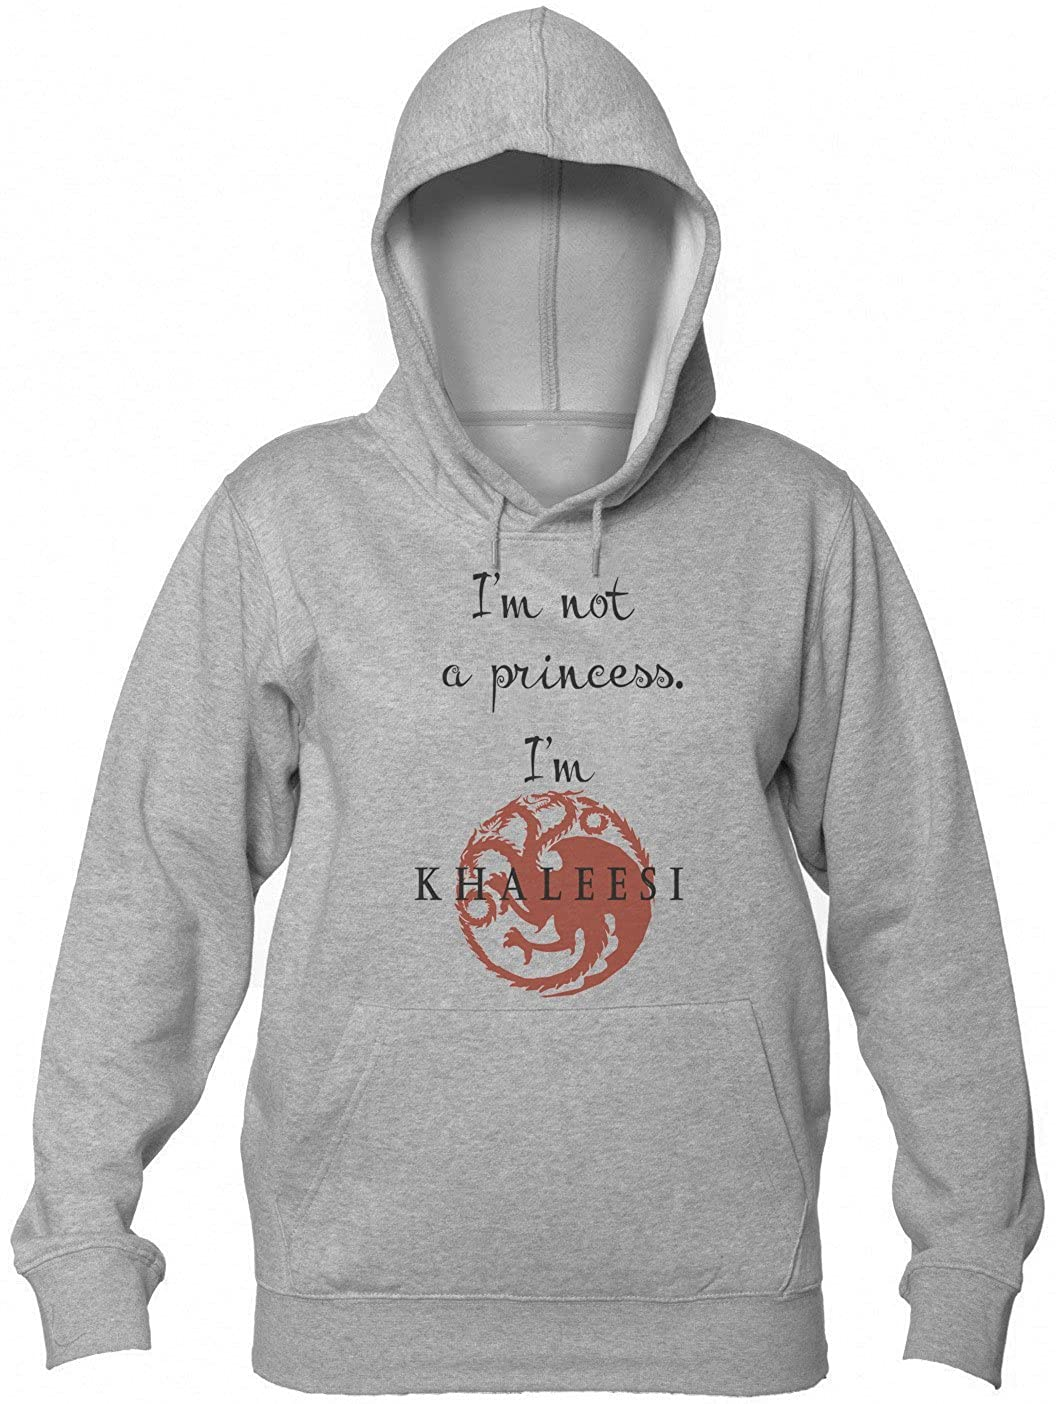 Finest Prints Im Not A Princess, Im Khaleesi Sudadera con ...